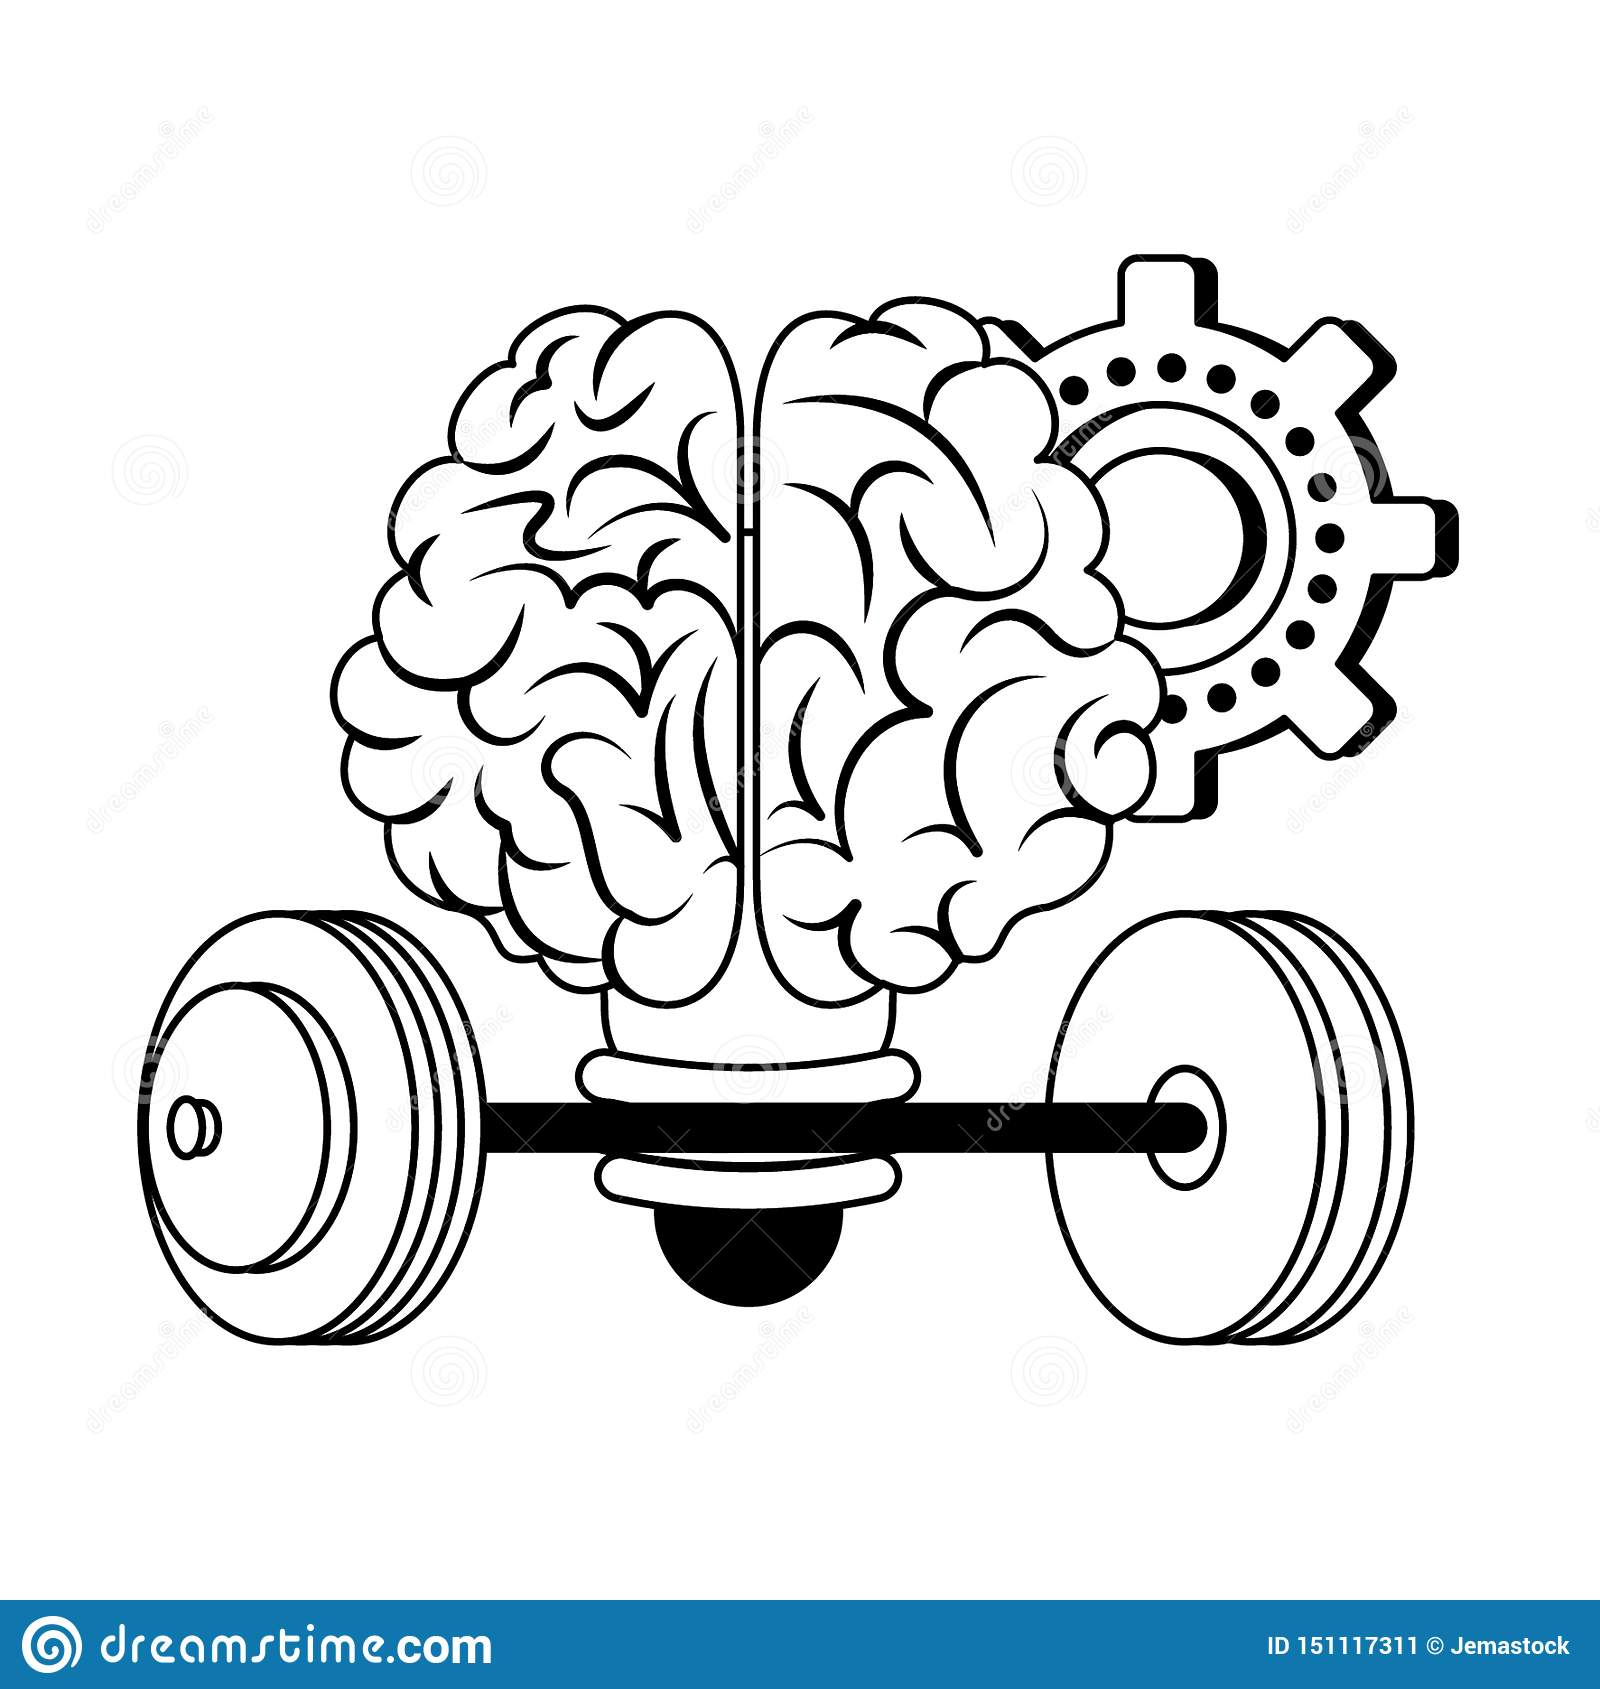 Human brain intelligence and creativity cartoons in black and white